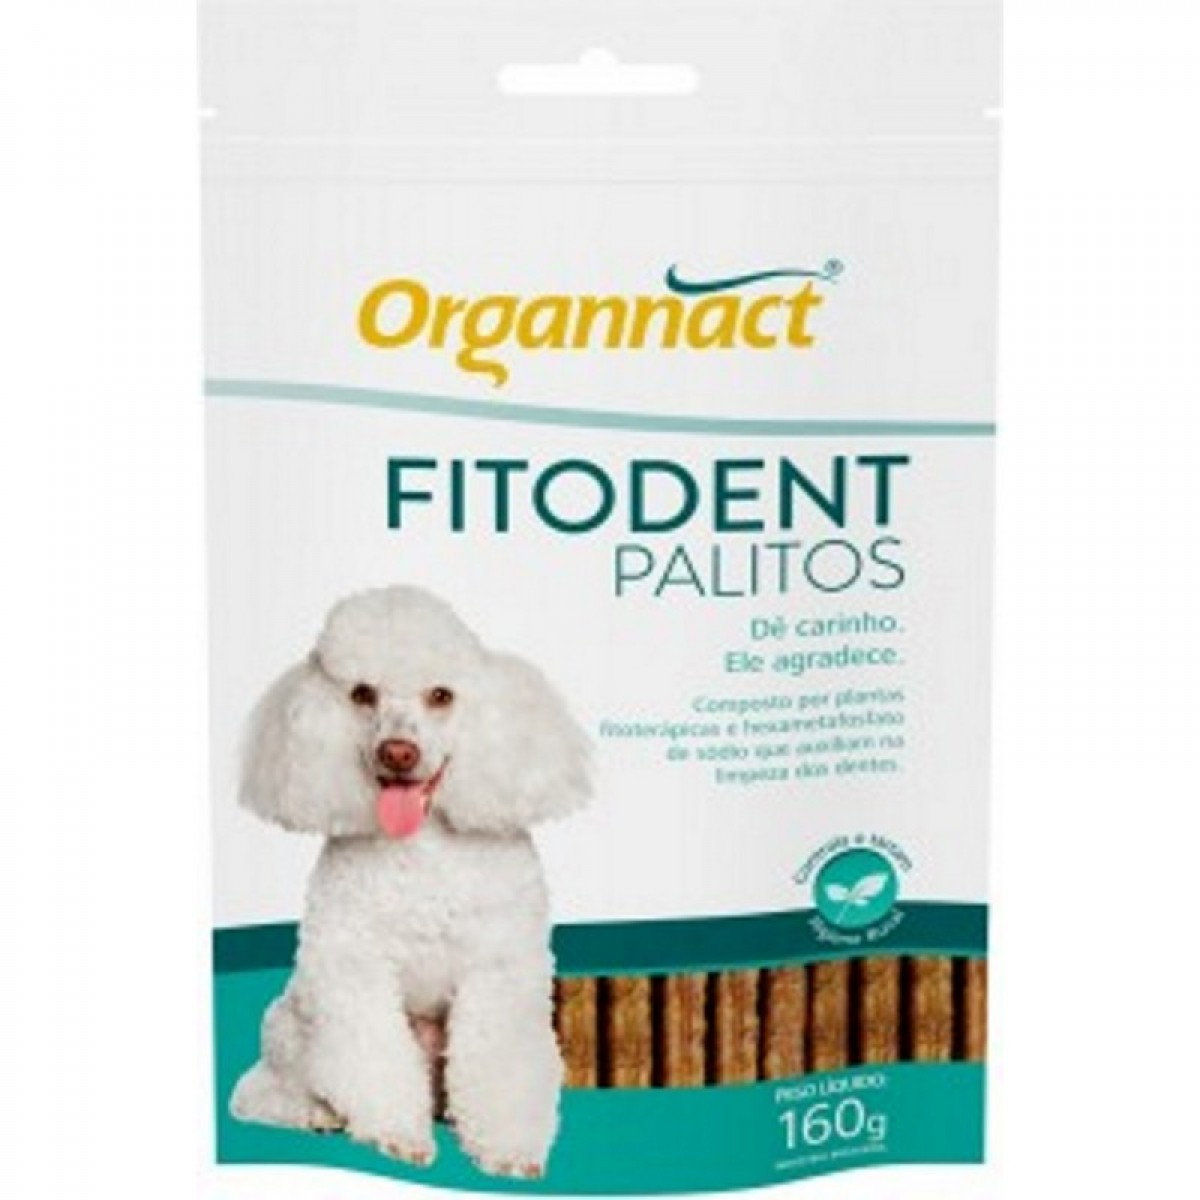 Fitodent Palitos - 160g